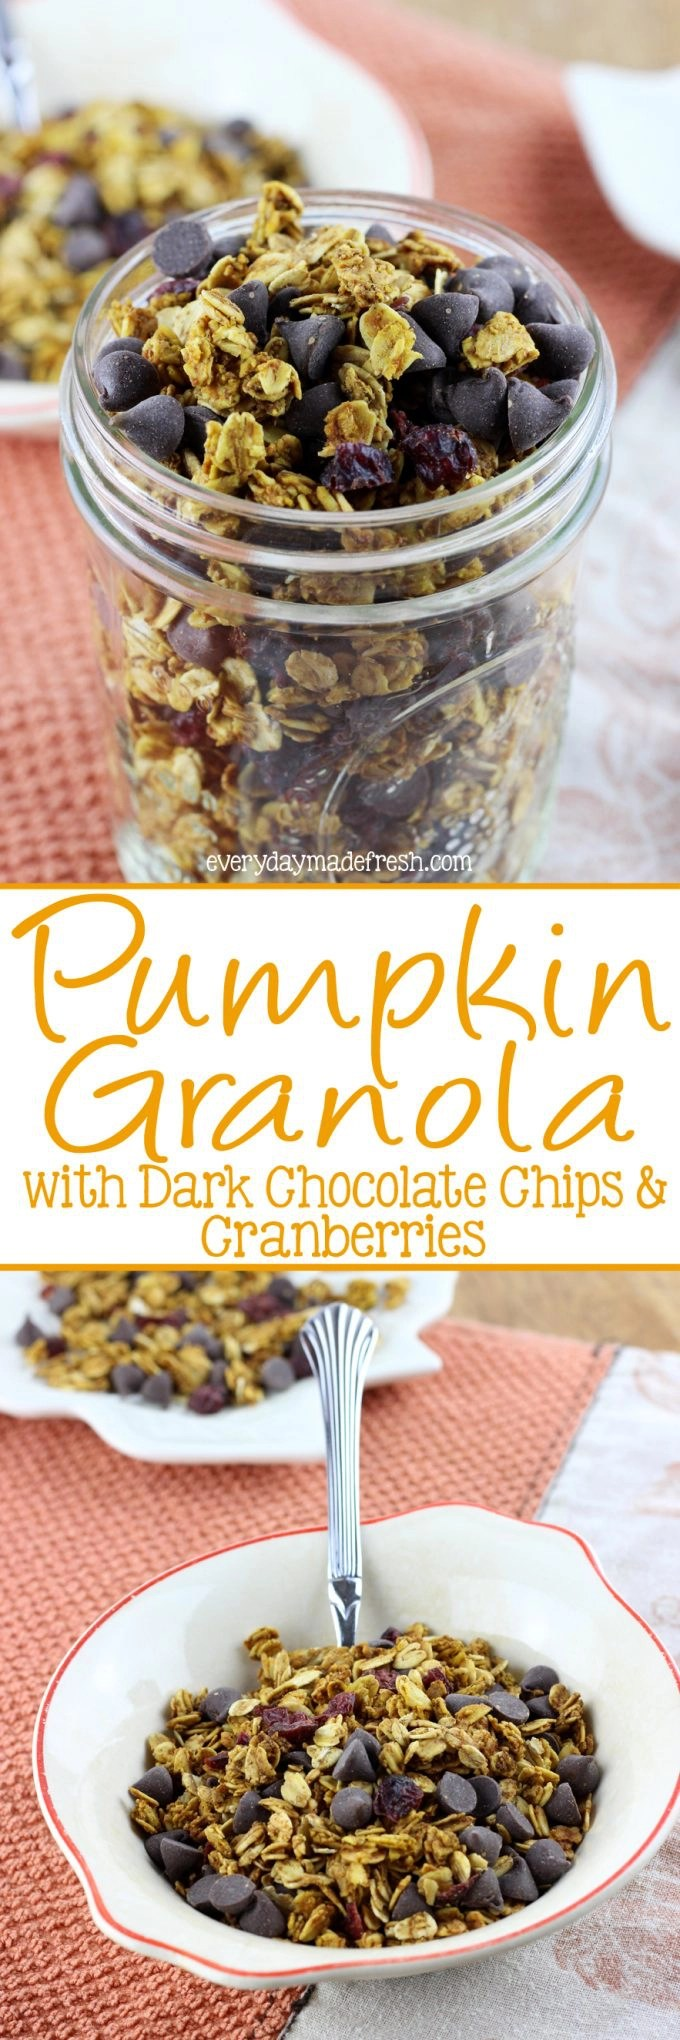 Granola has never tasted more like fall! This Pumpkin Granola with Dark Chocolate Chips & Cranberries is spiced with all the right spices and sweetened with maple syrup.| EverydayMadeFresh.com